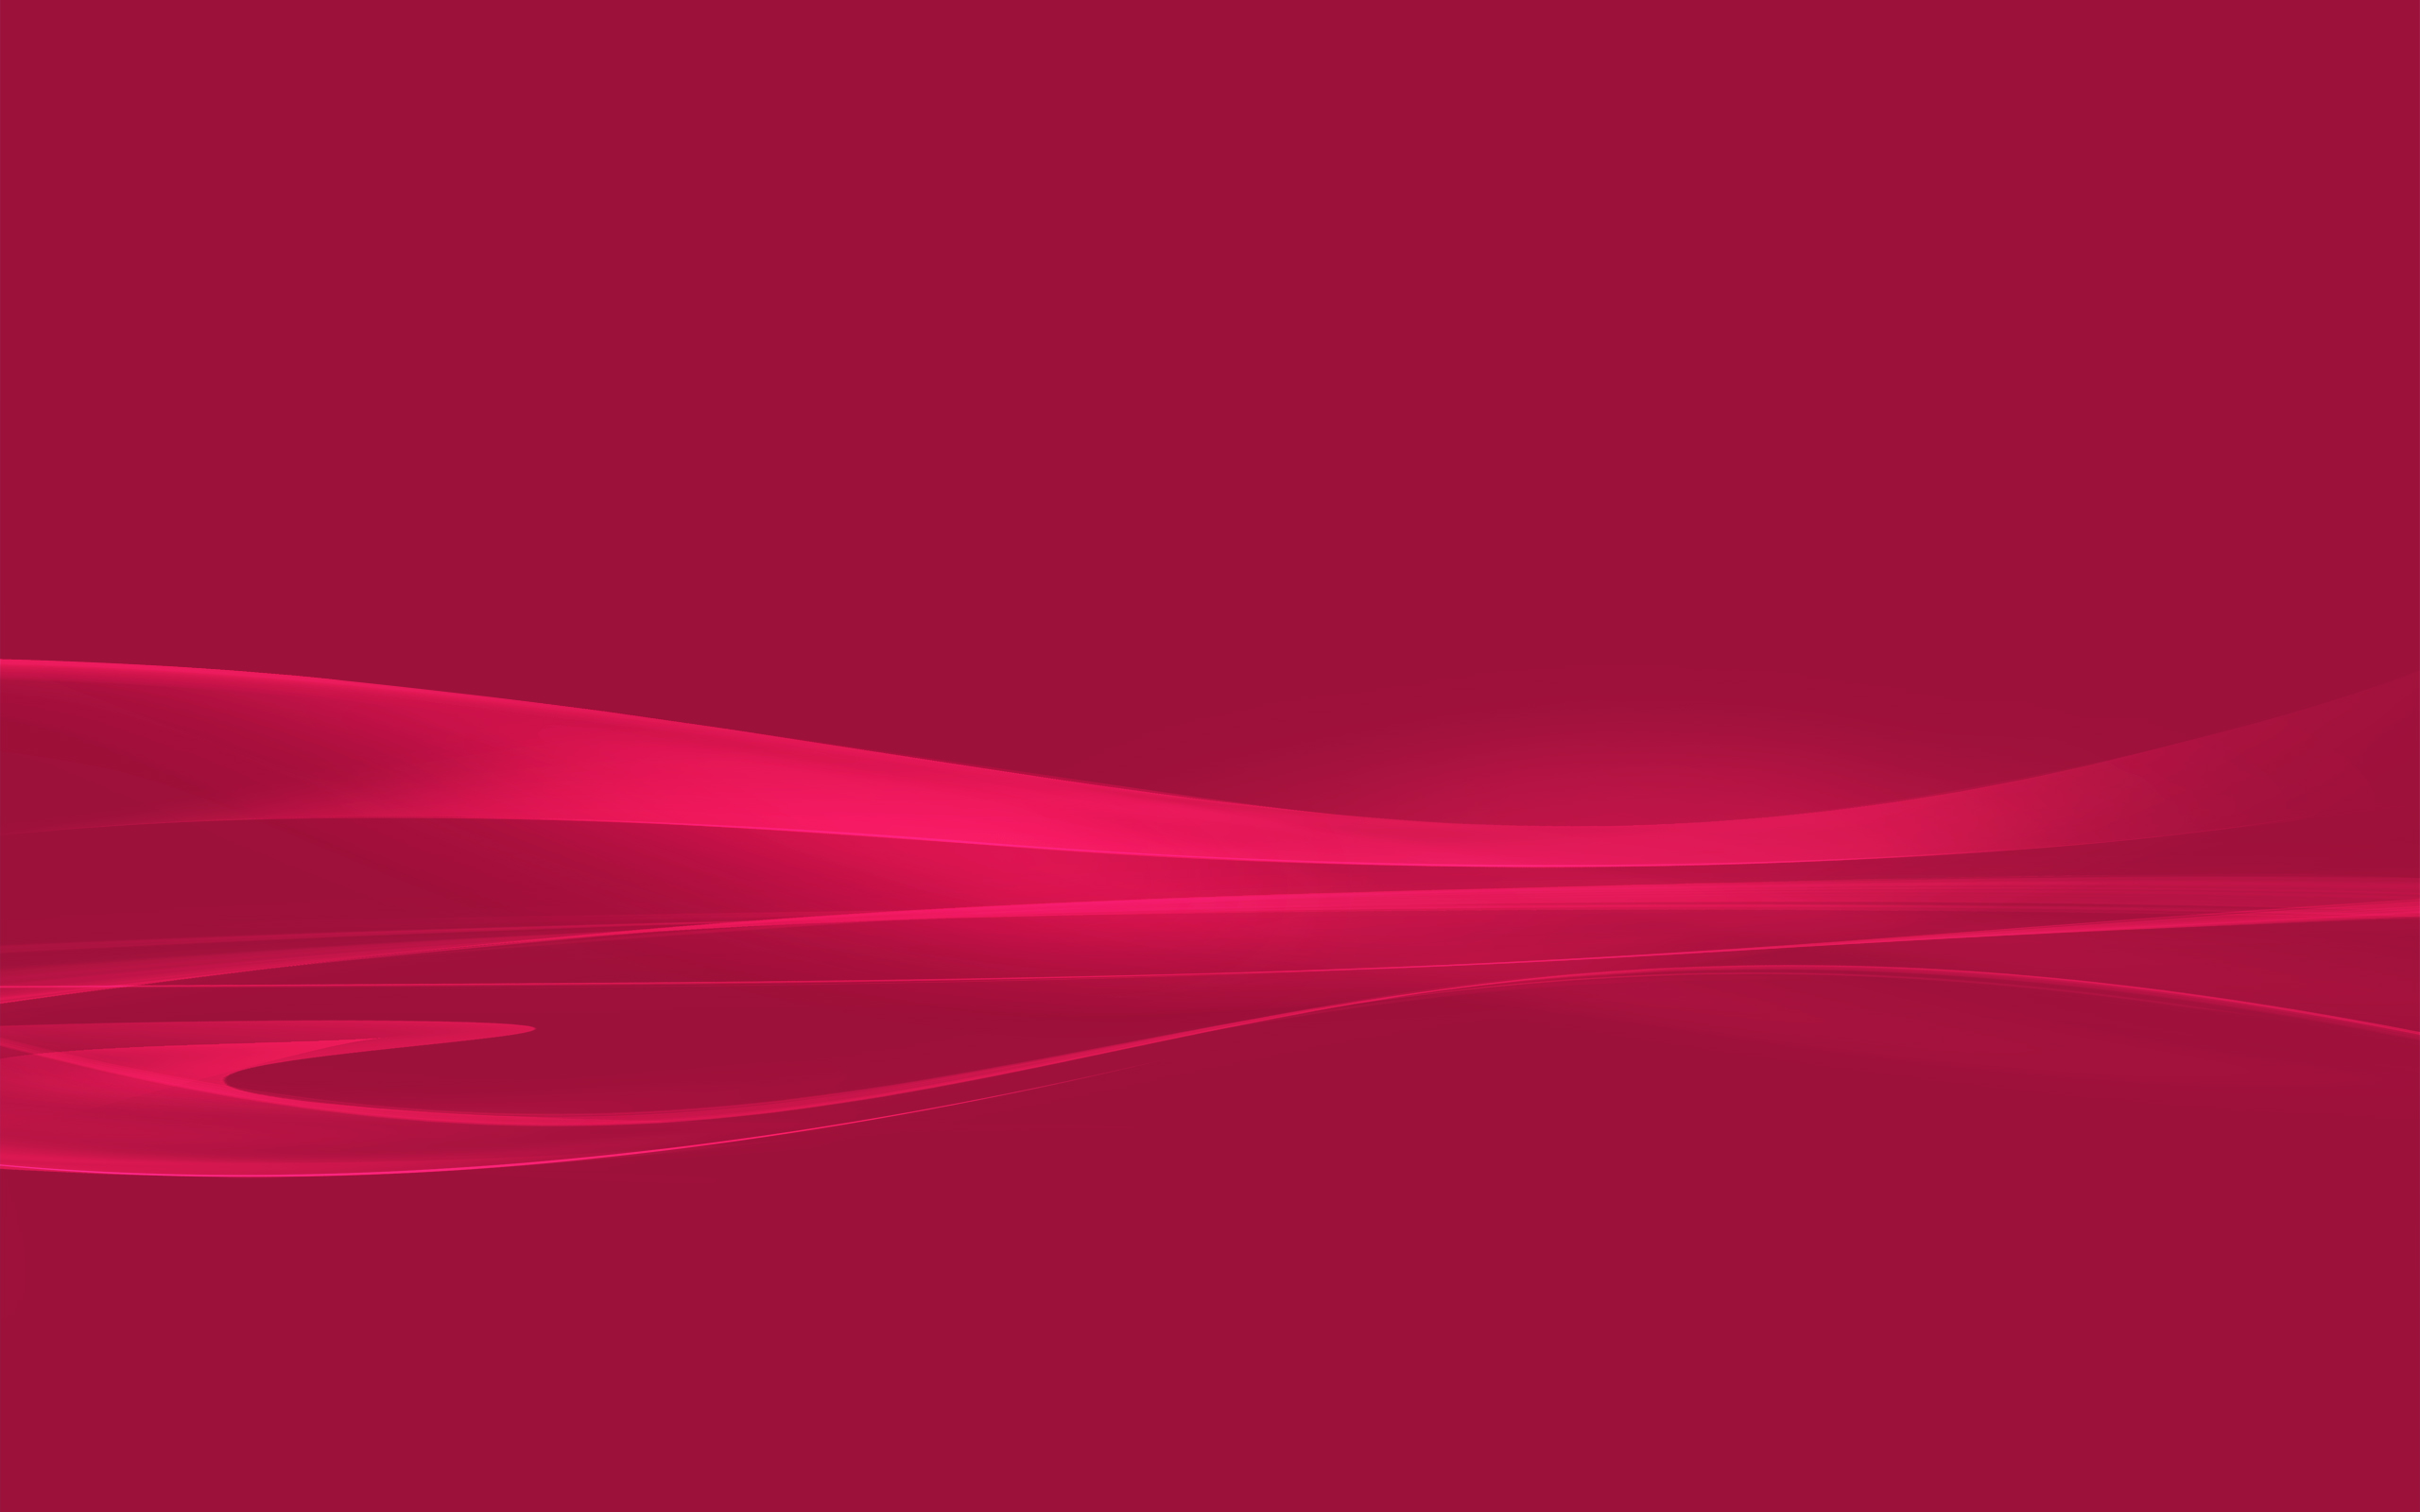 Plain Wallpapers HD red